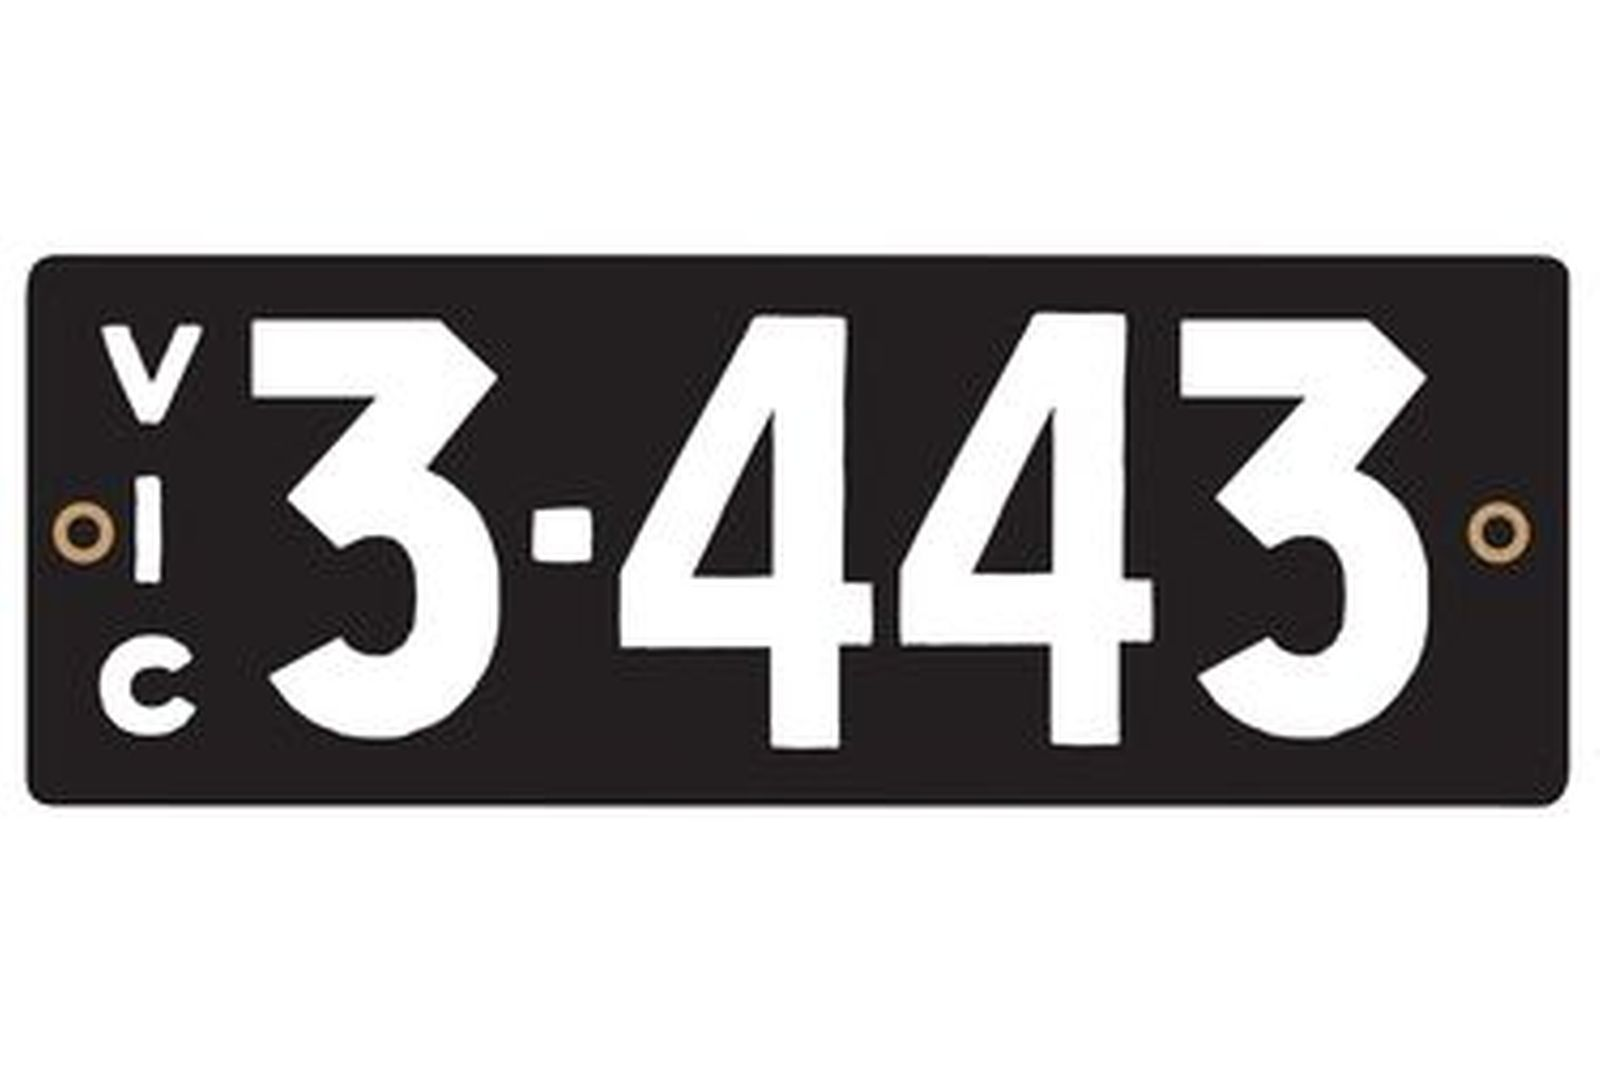 Victorian Heritage Number Plate '3.443'